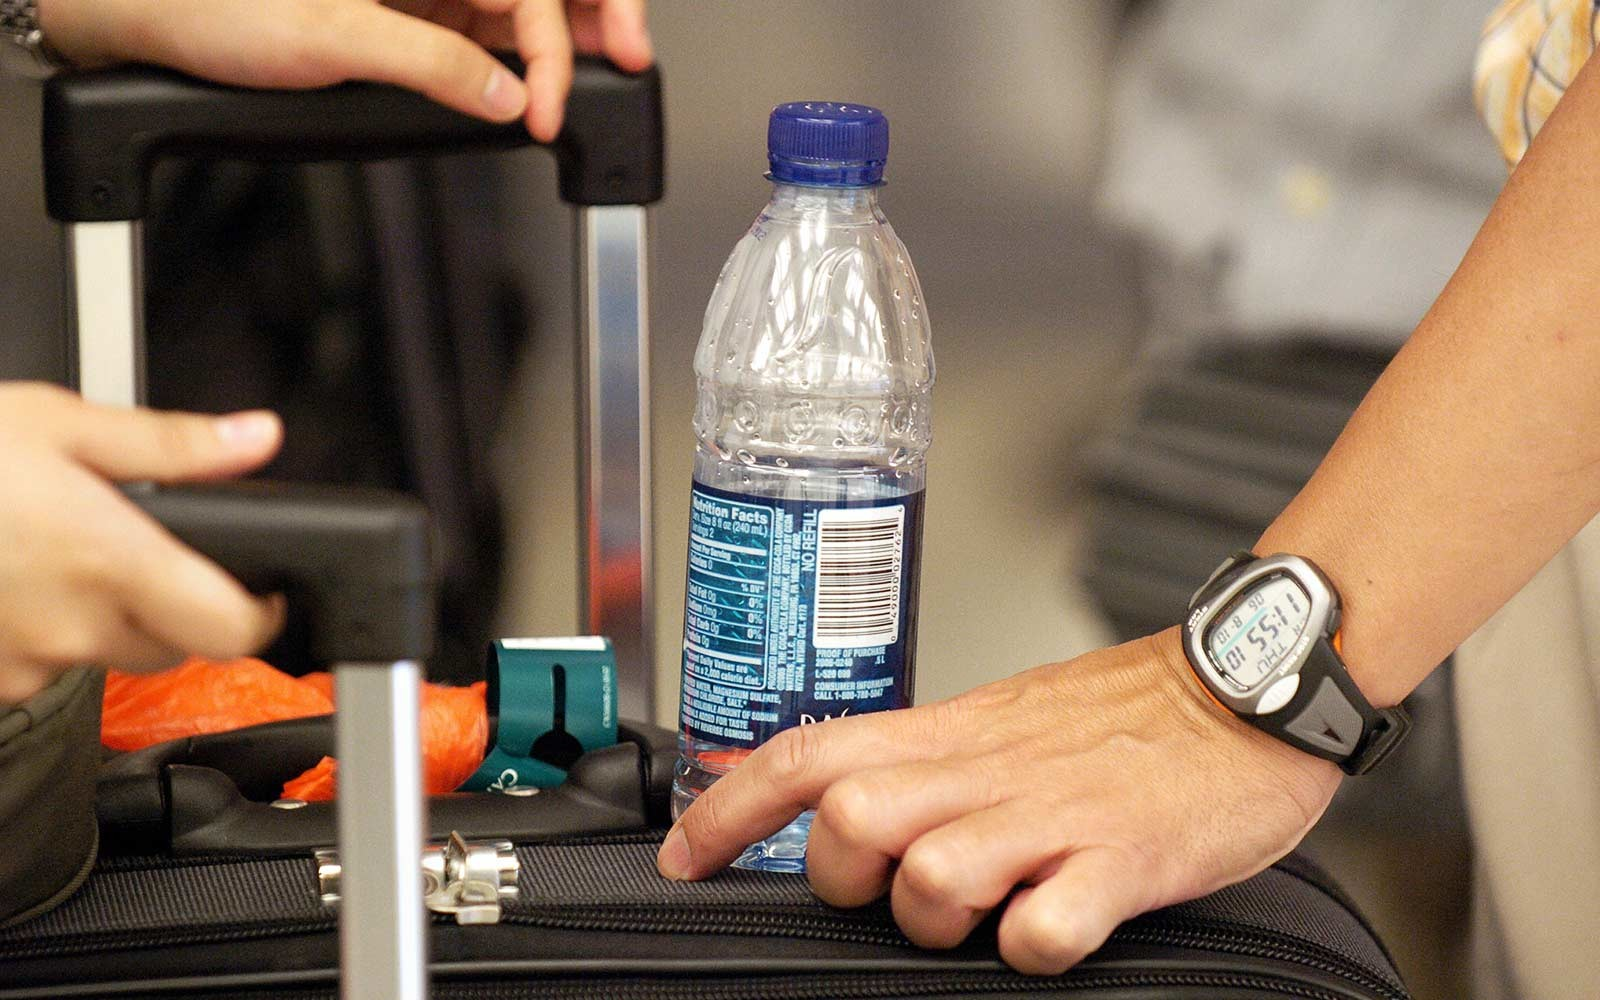 How to Get Your Water Past Airport Security